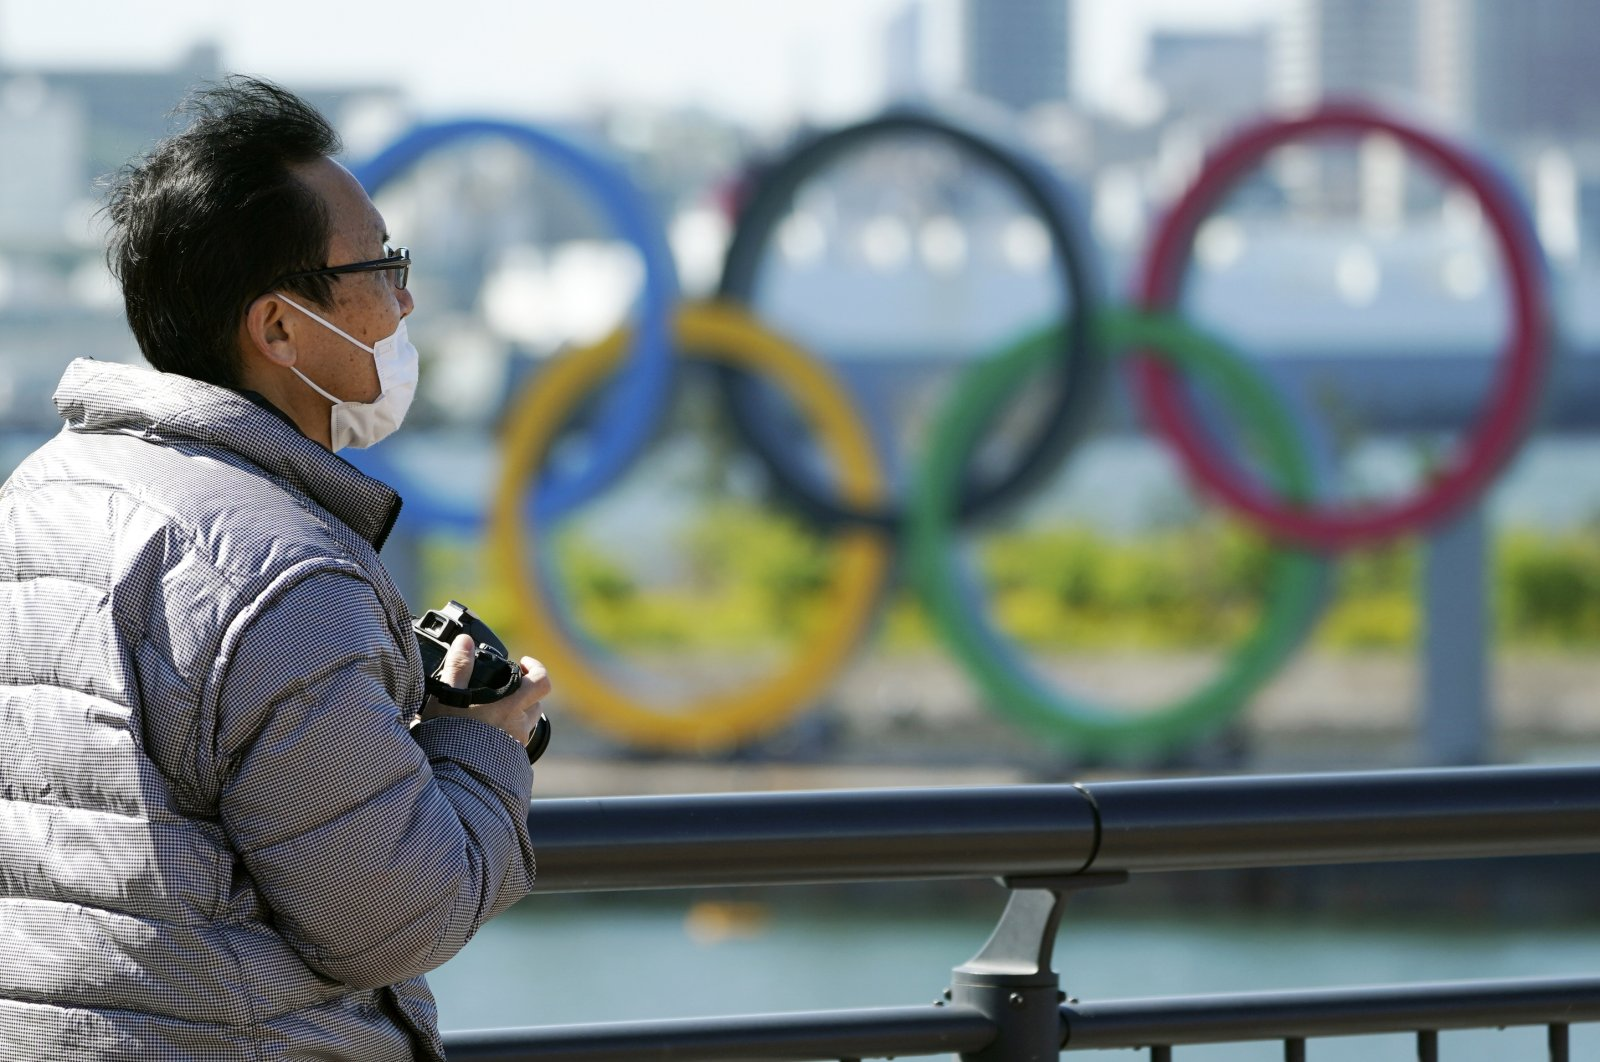 A visitor wearing a mask stands near the Olympic rings, in Tokyo, Japan, March 24, 2020. (AP Photo)